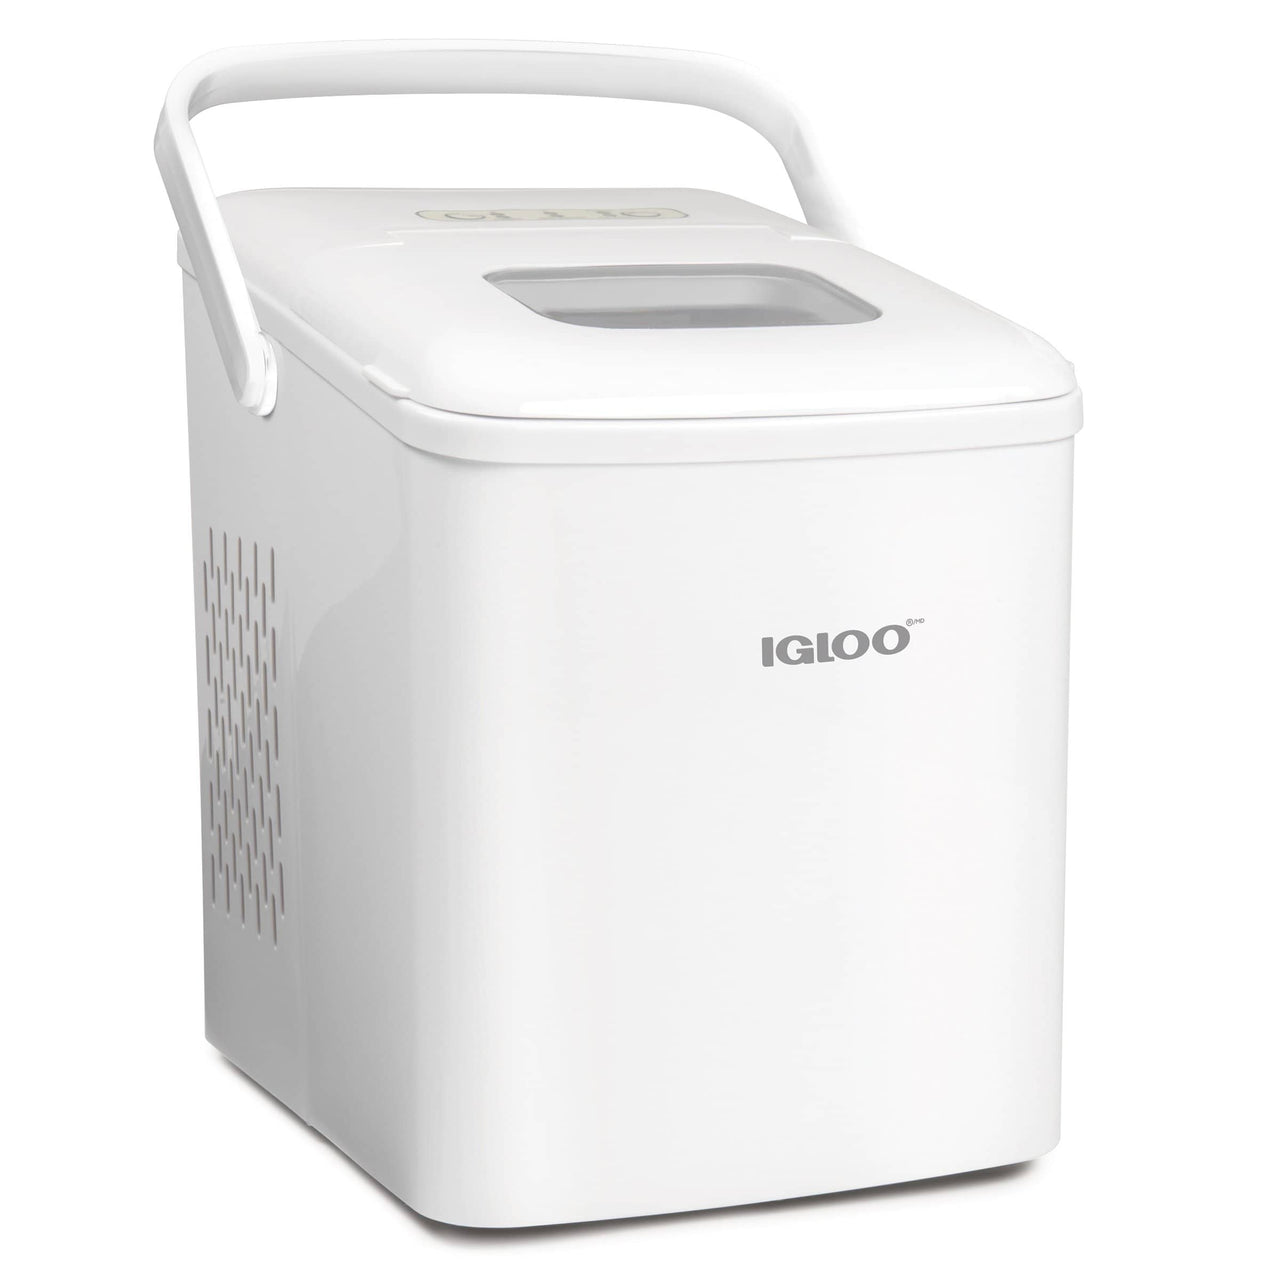 IGLOO® 26-Pound Automatic Self-Cleaning Portable Countertop Ice Maker Machine With Handle, White